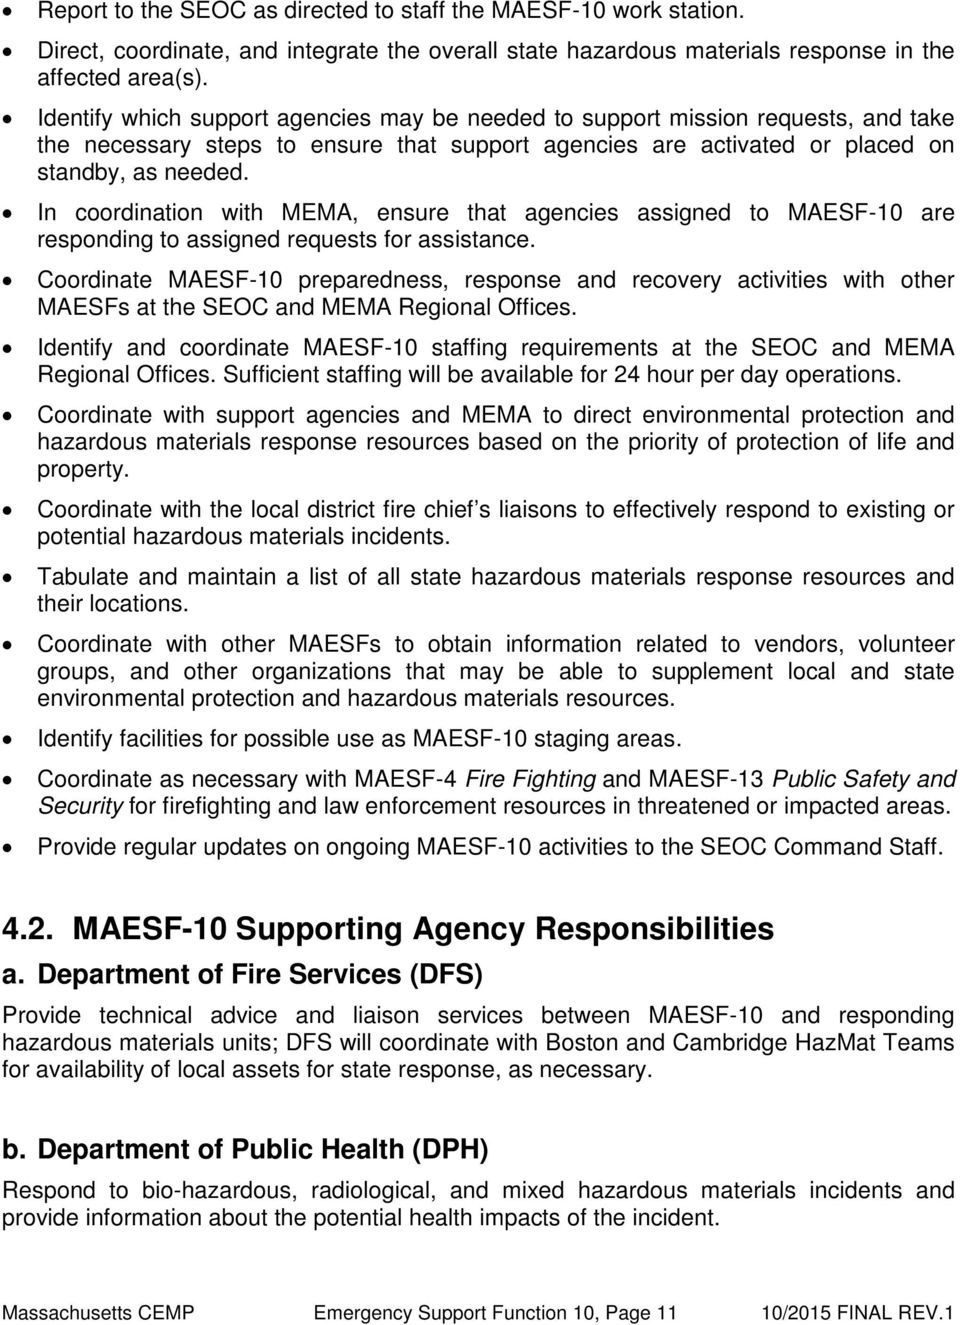 In coordination with MEMA, ensure that agencies assigned to MAESF-10 are responding to assigned requests for assistance.